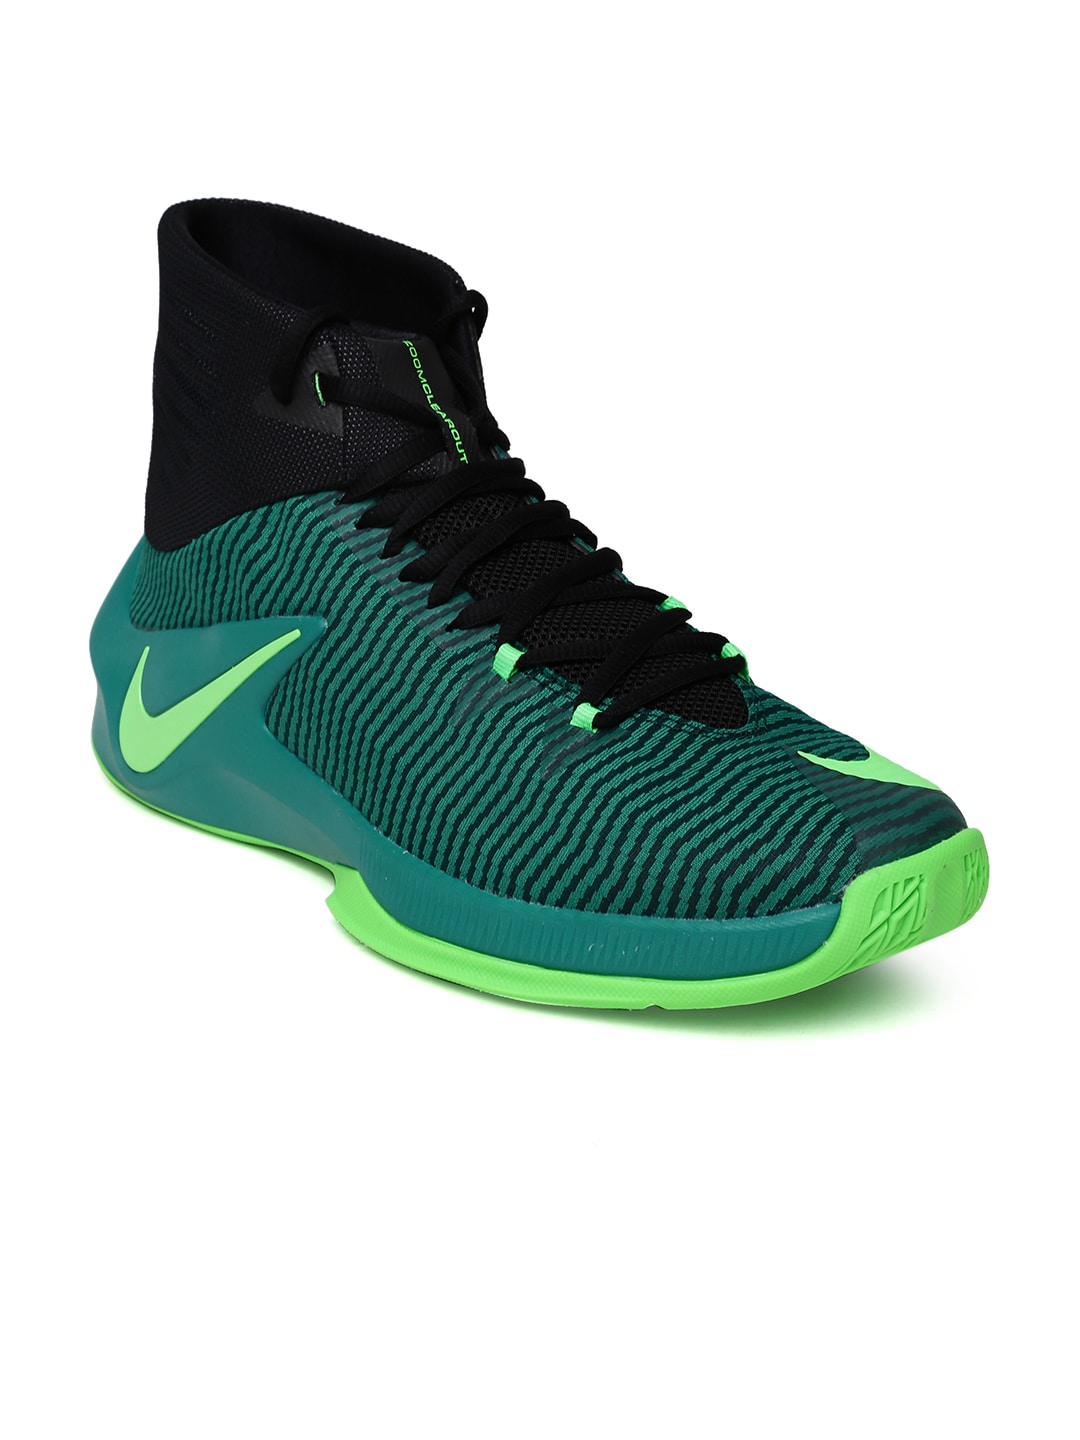 bac9f38b560b Nike 844370-330 Men Teal Green And Black Zoom Clear Out Basketball Shoes-  Price in India